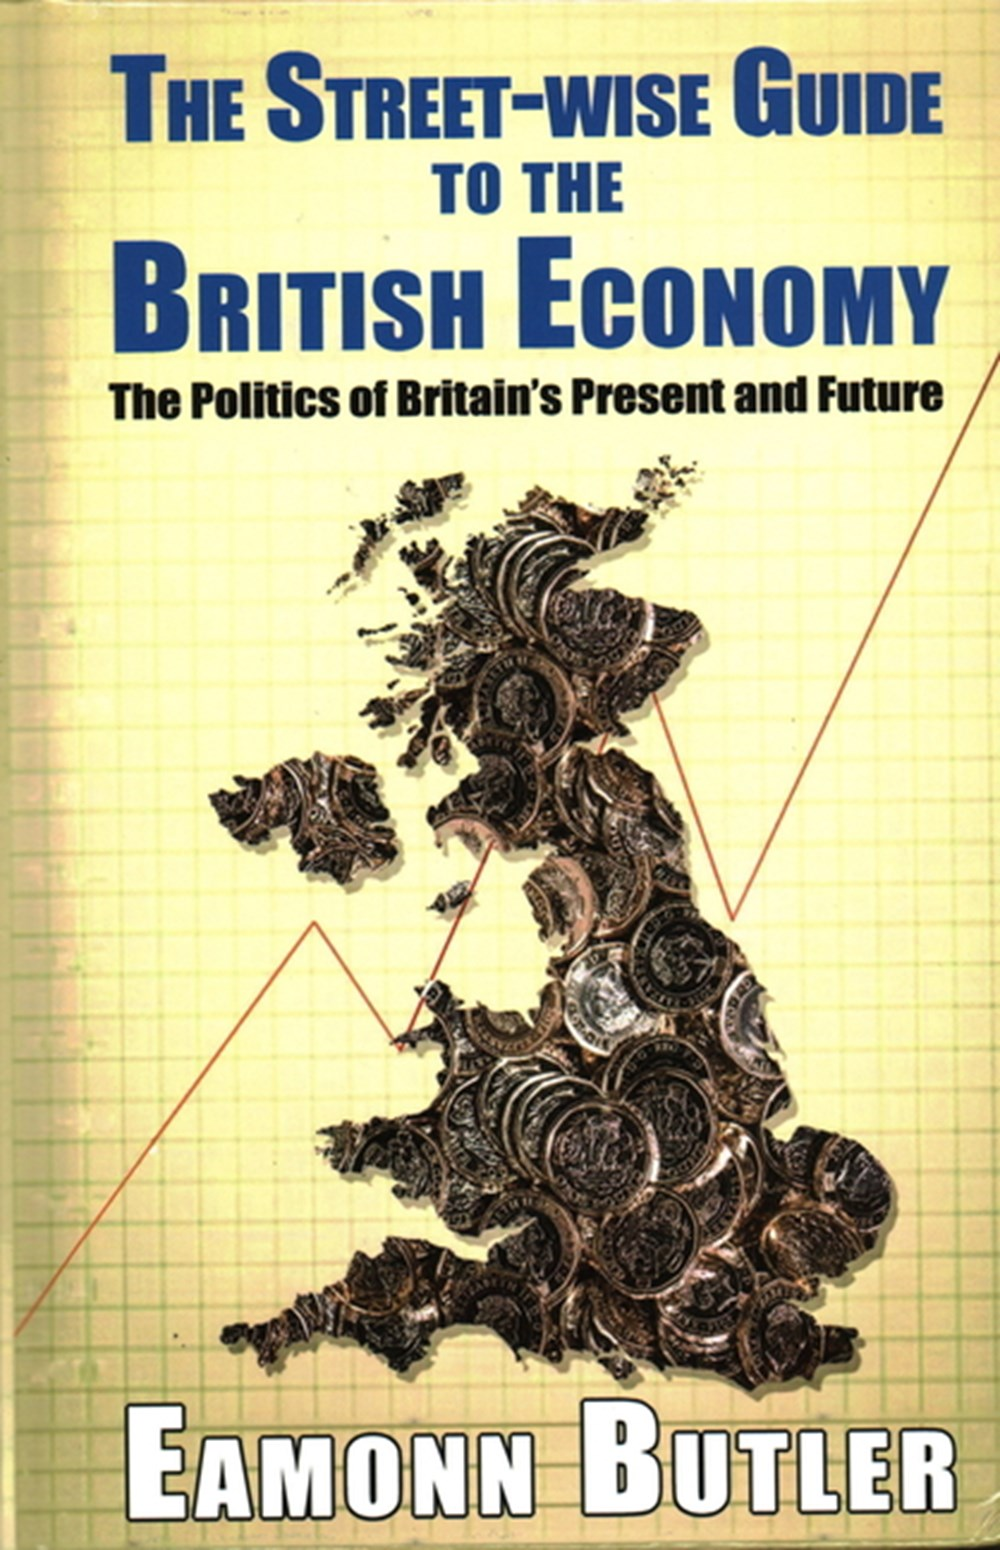 Streetwise Guide To The British Economy The Politics Of Britain's Present And Future